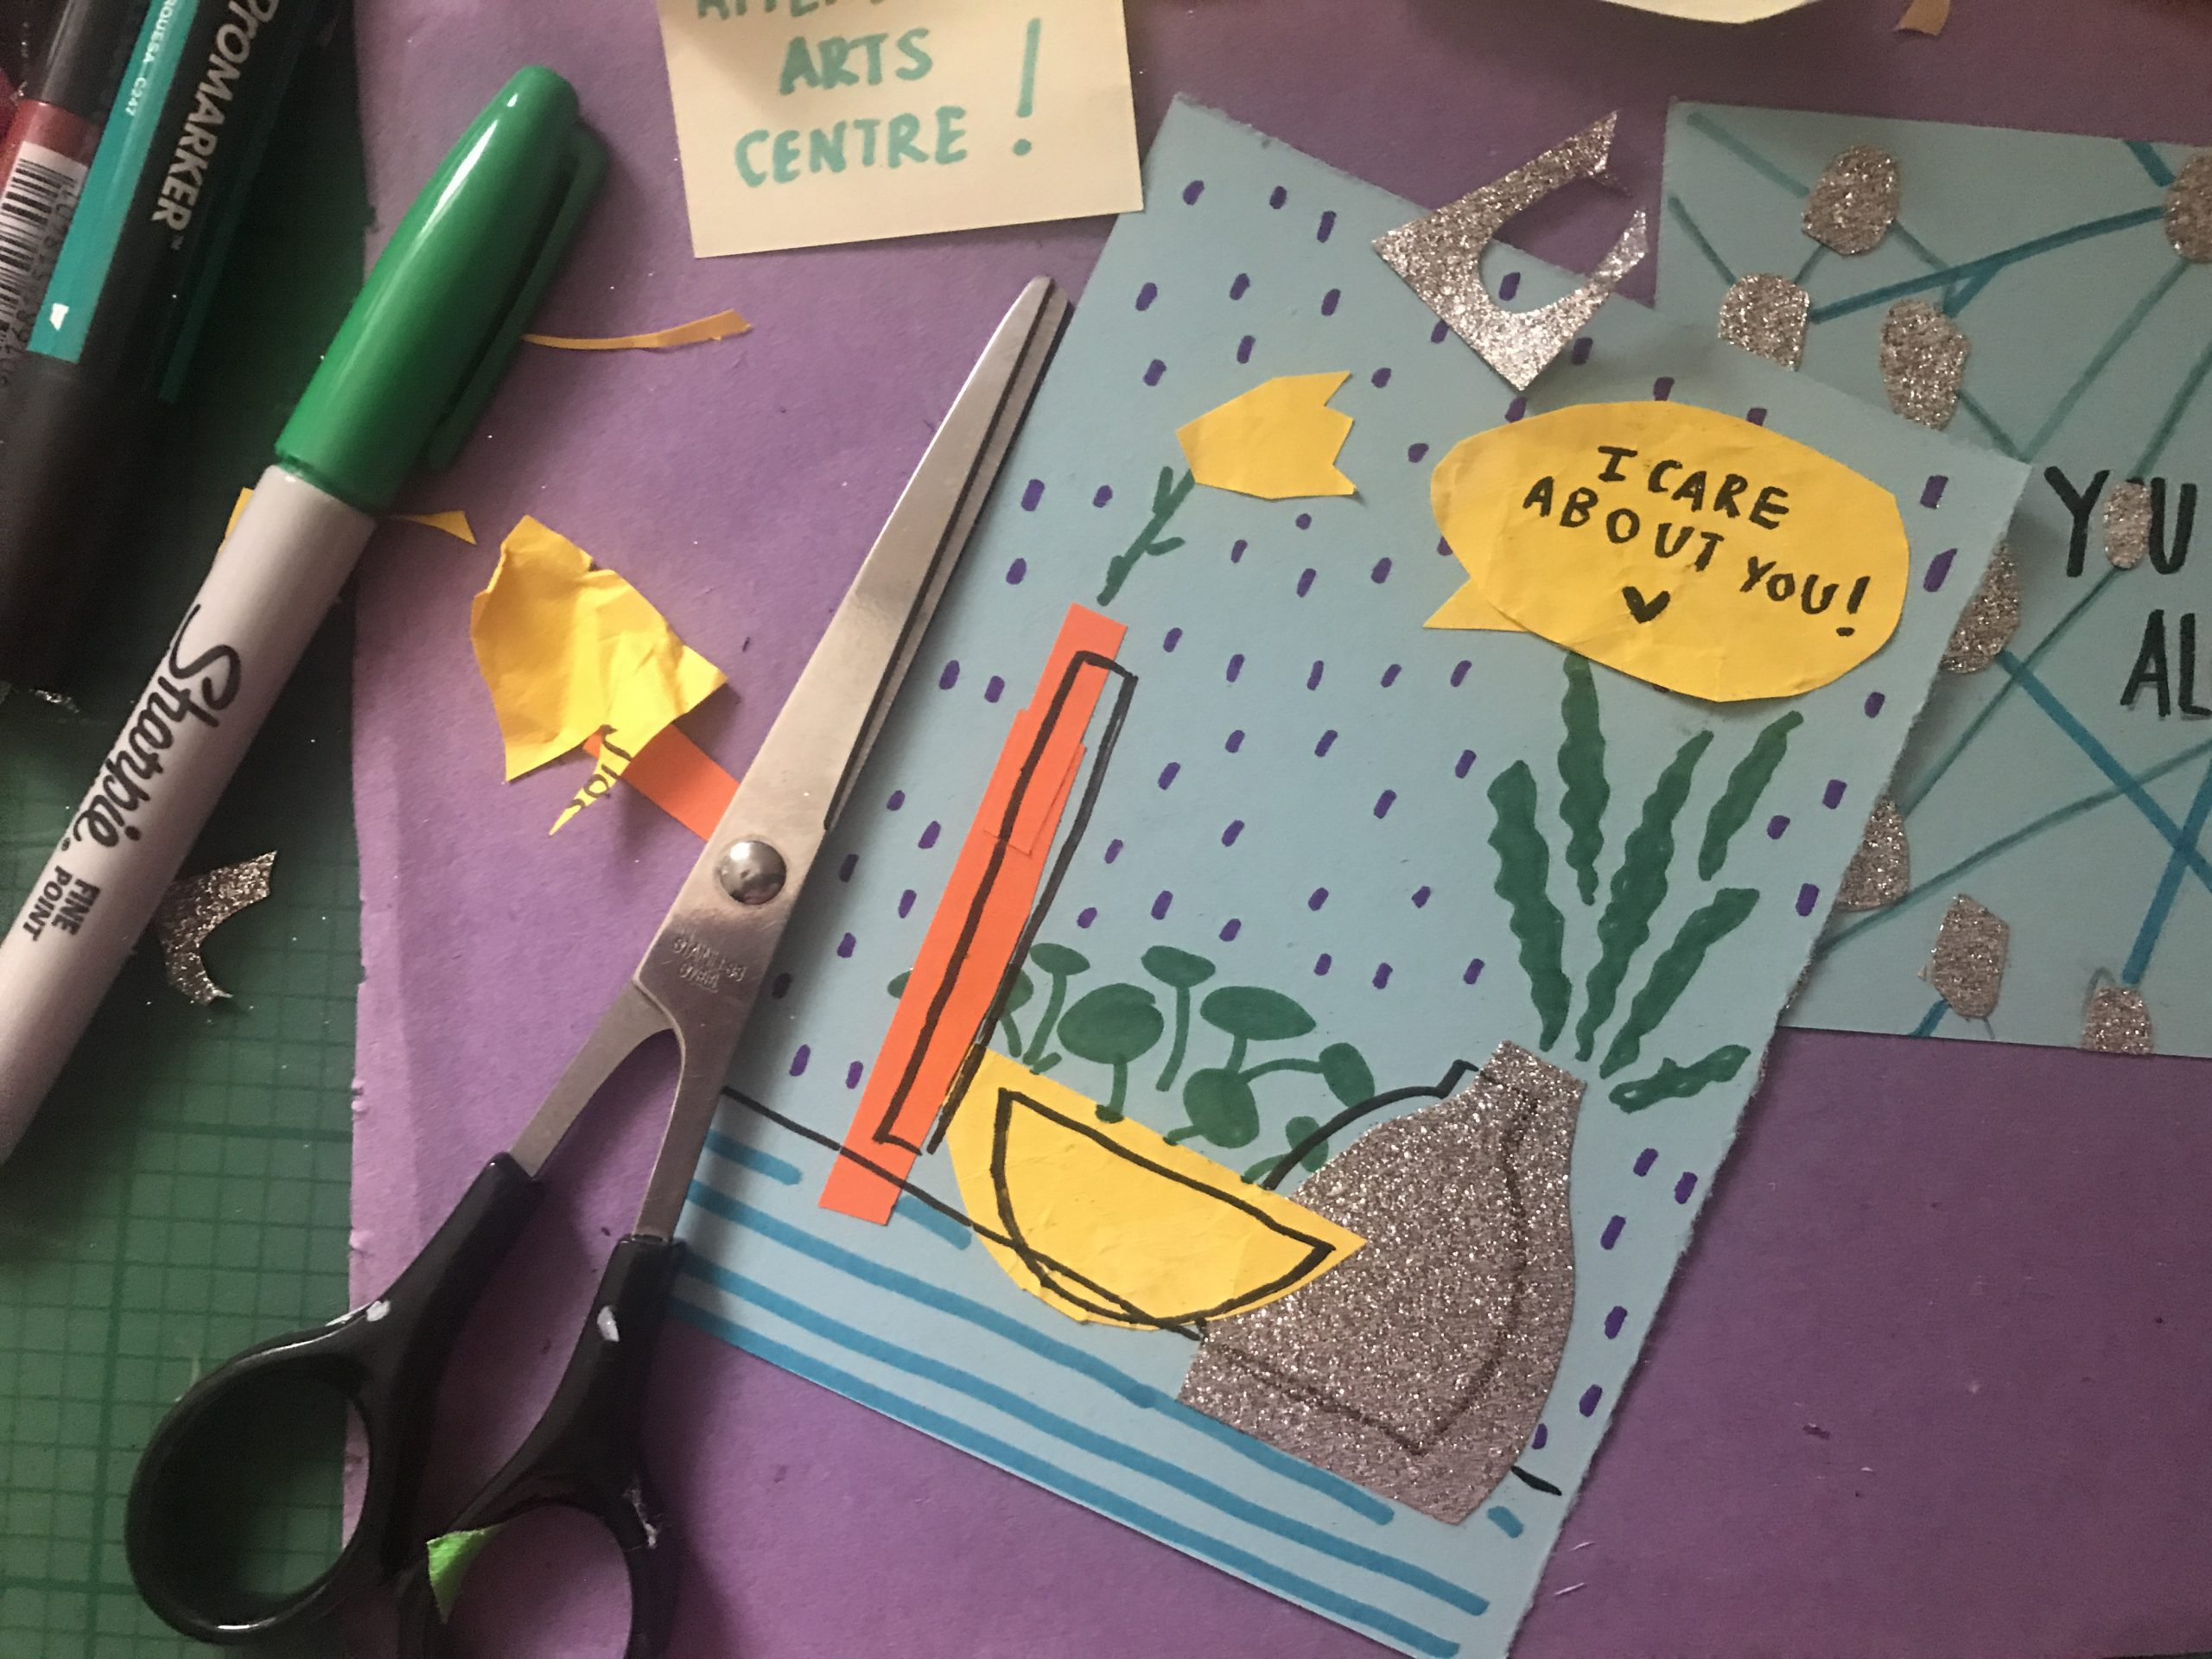 A photo of an artist's desk shows two postcard designs on blue card. The one on the left is a portrait collage of three flower vases in the rain, saying 'I care about you'. The one on the right is landscape and reads 'you are not alone', with all the Os connected to a web of silver circles surrounding the words. In the background is a purple sheet of paper on a green cutting board, surrounded by pens, Soofiya's rainbow business cards and yellow post-it-notes